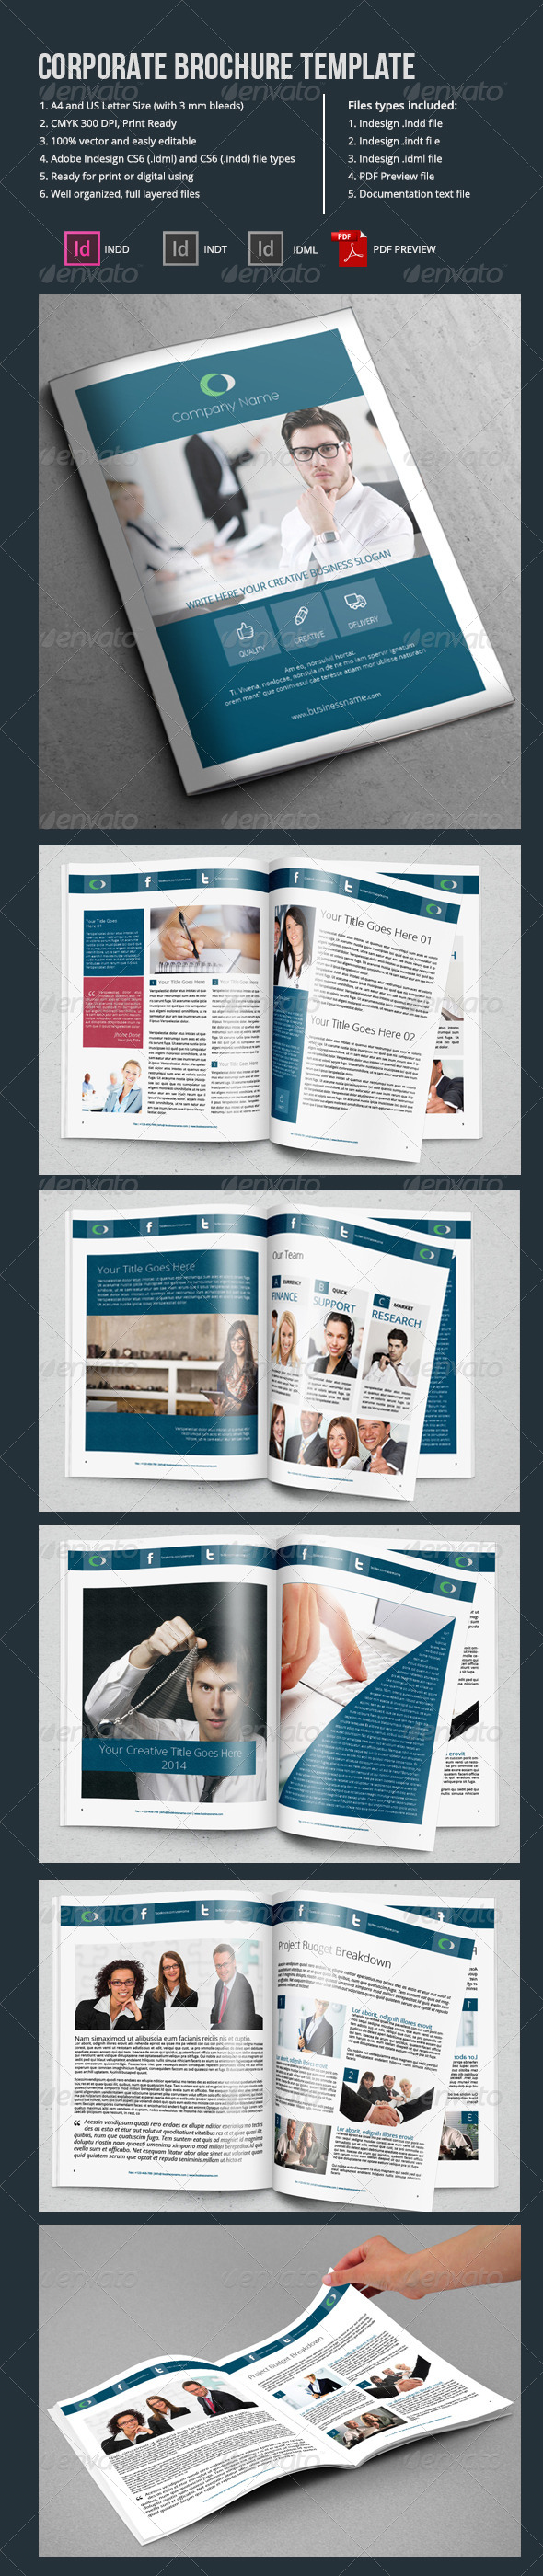 Corporate Brochure Template-12 Pages - Corporate Brochures